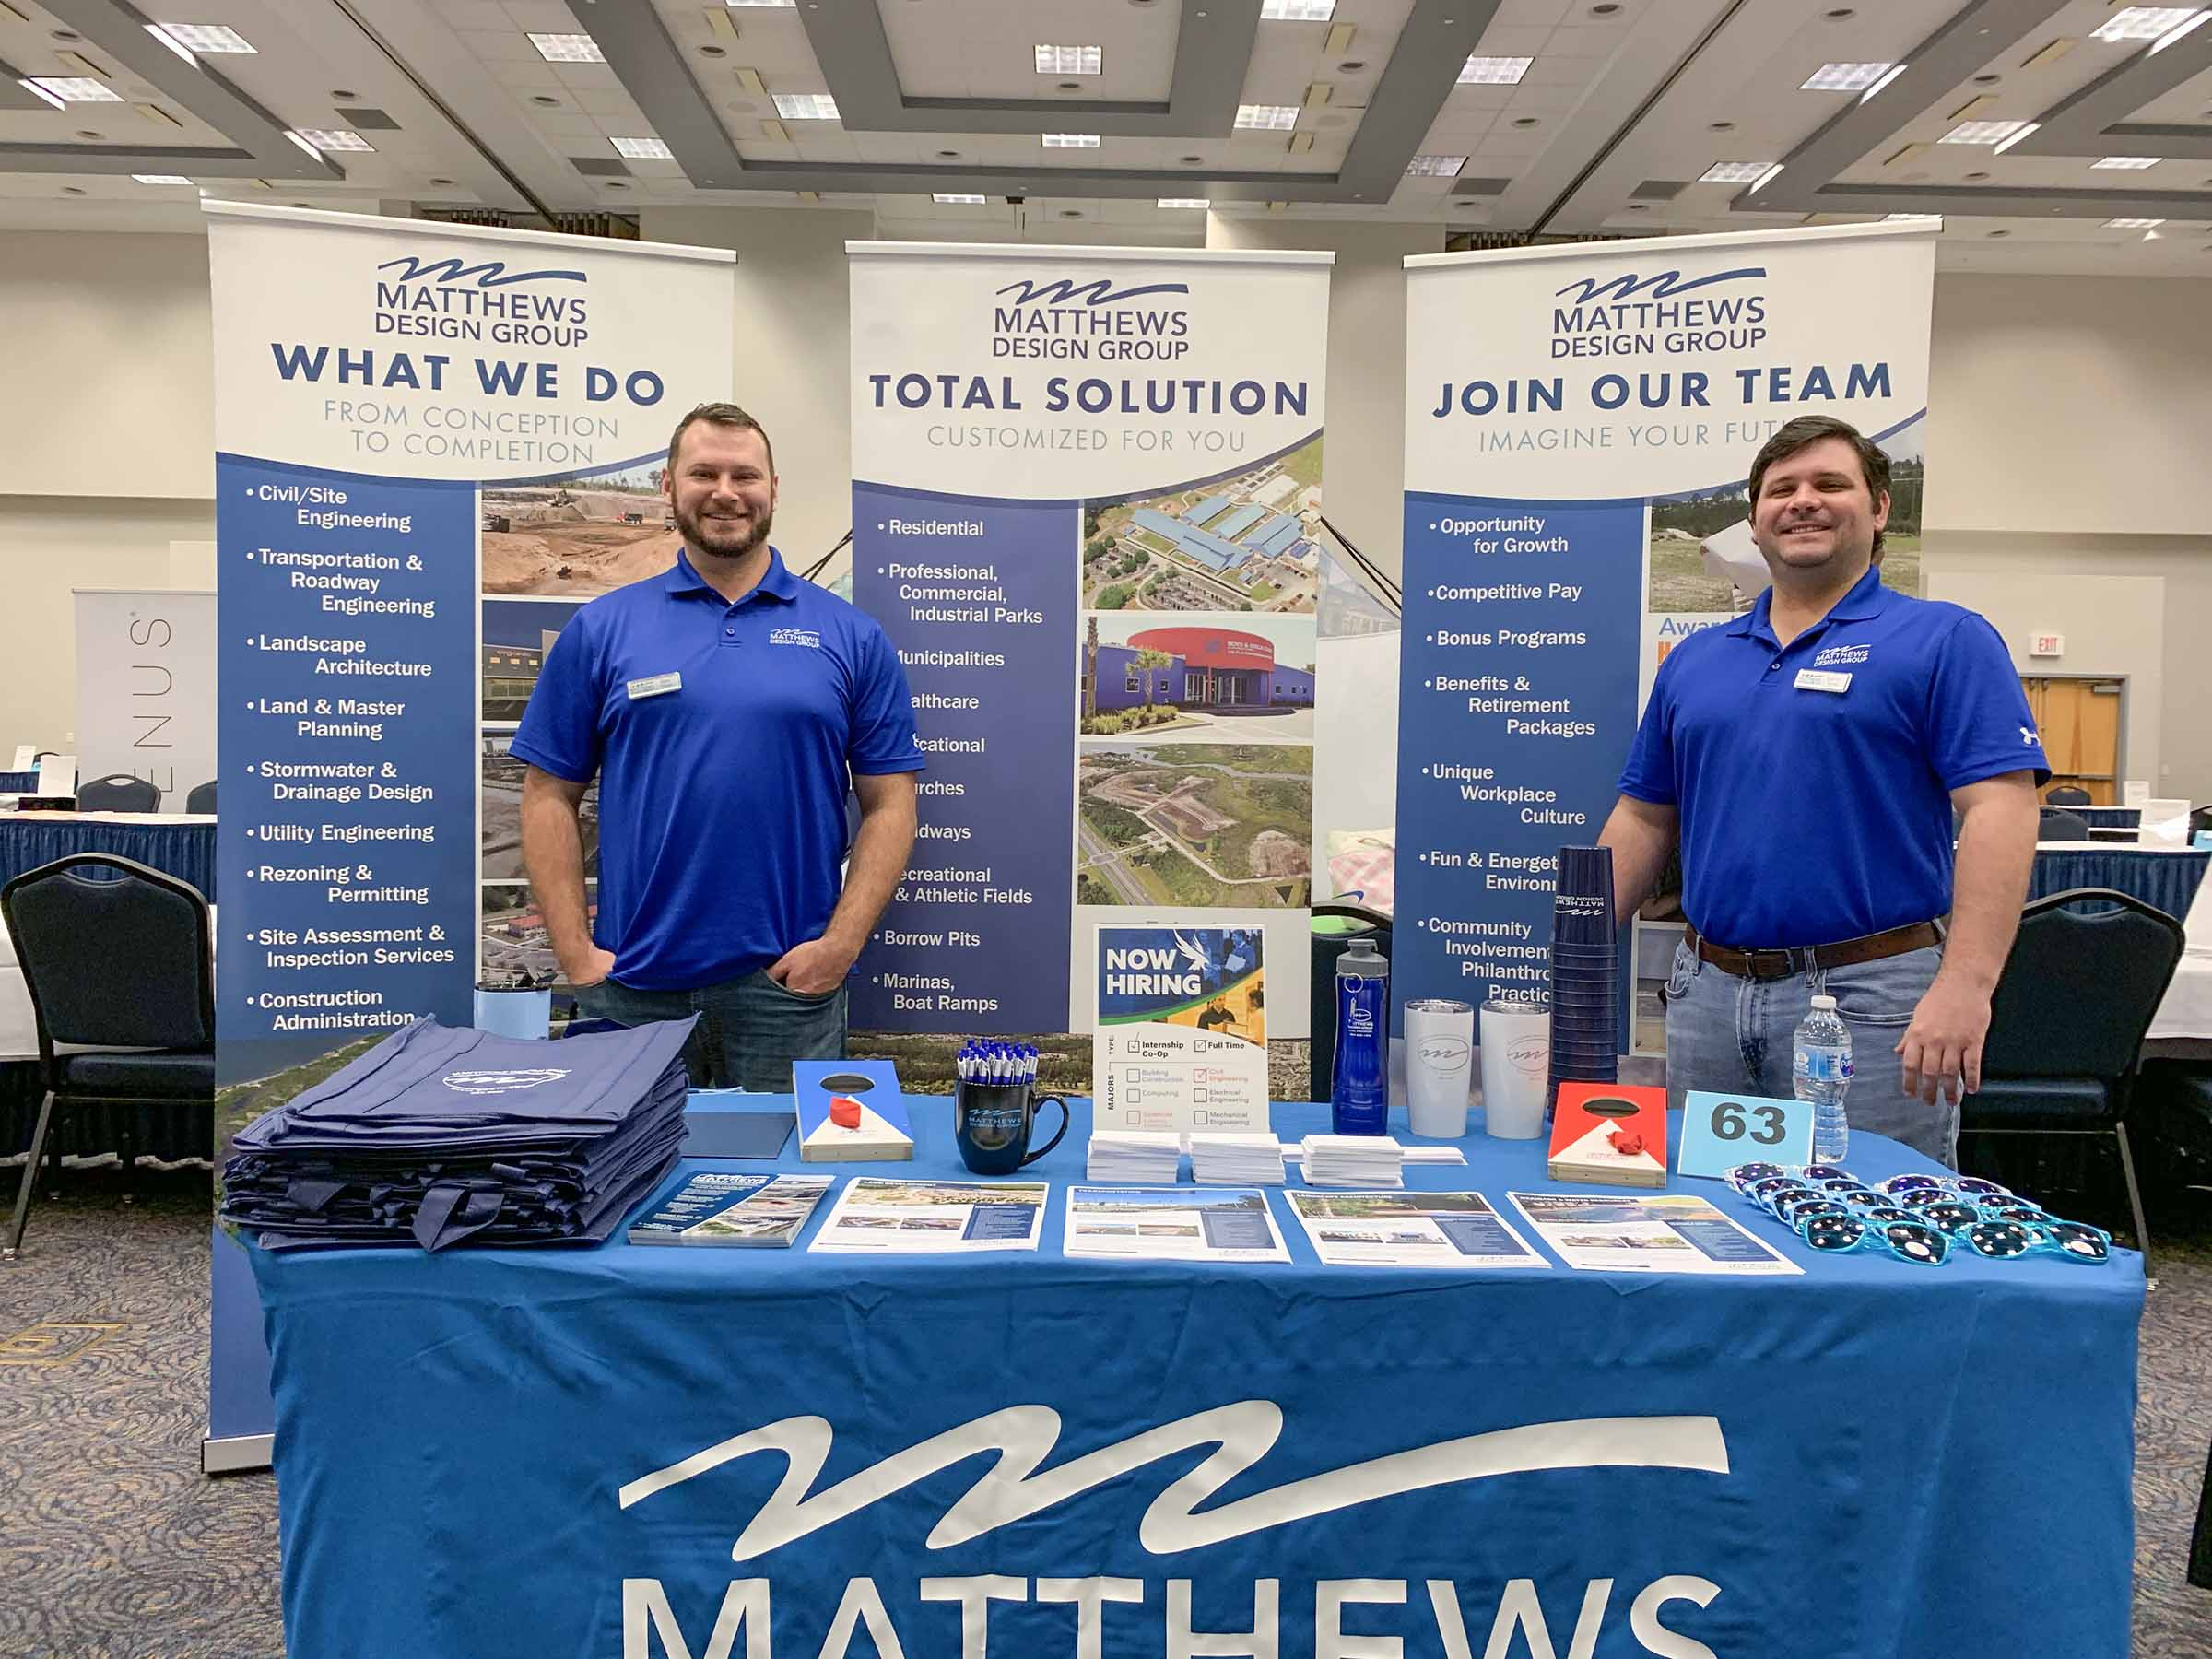 Two team members standing in front of a Matthews Design Group booth smiling.